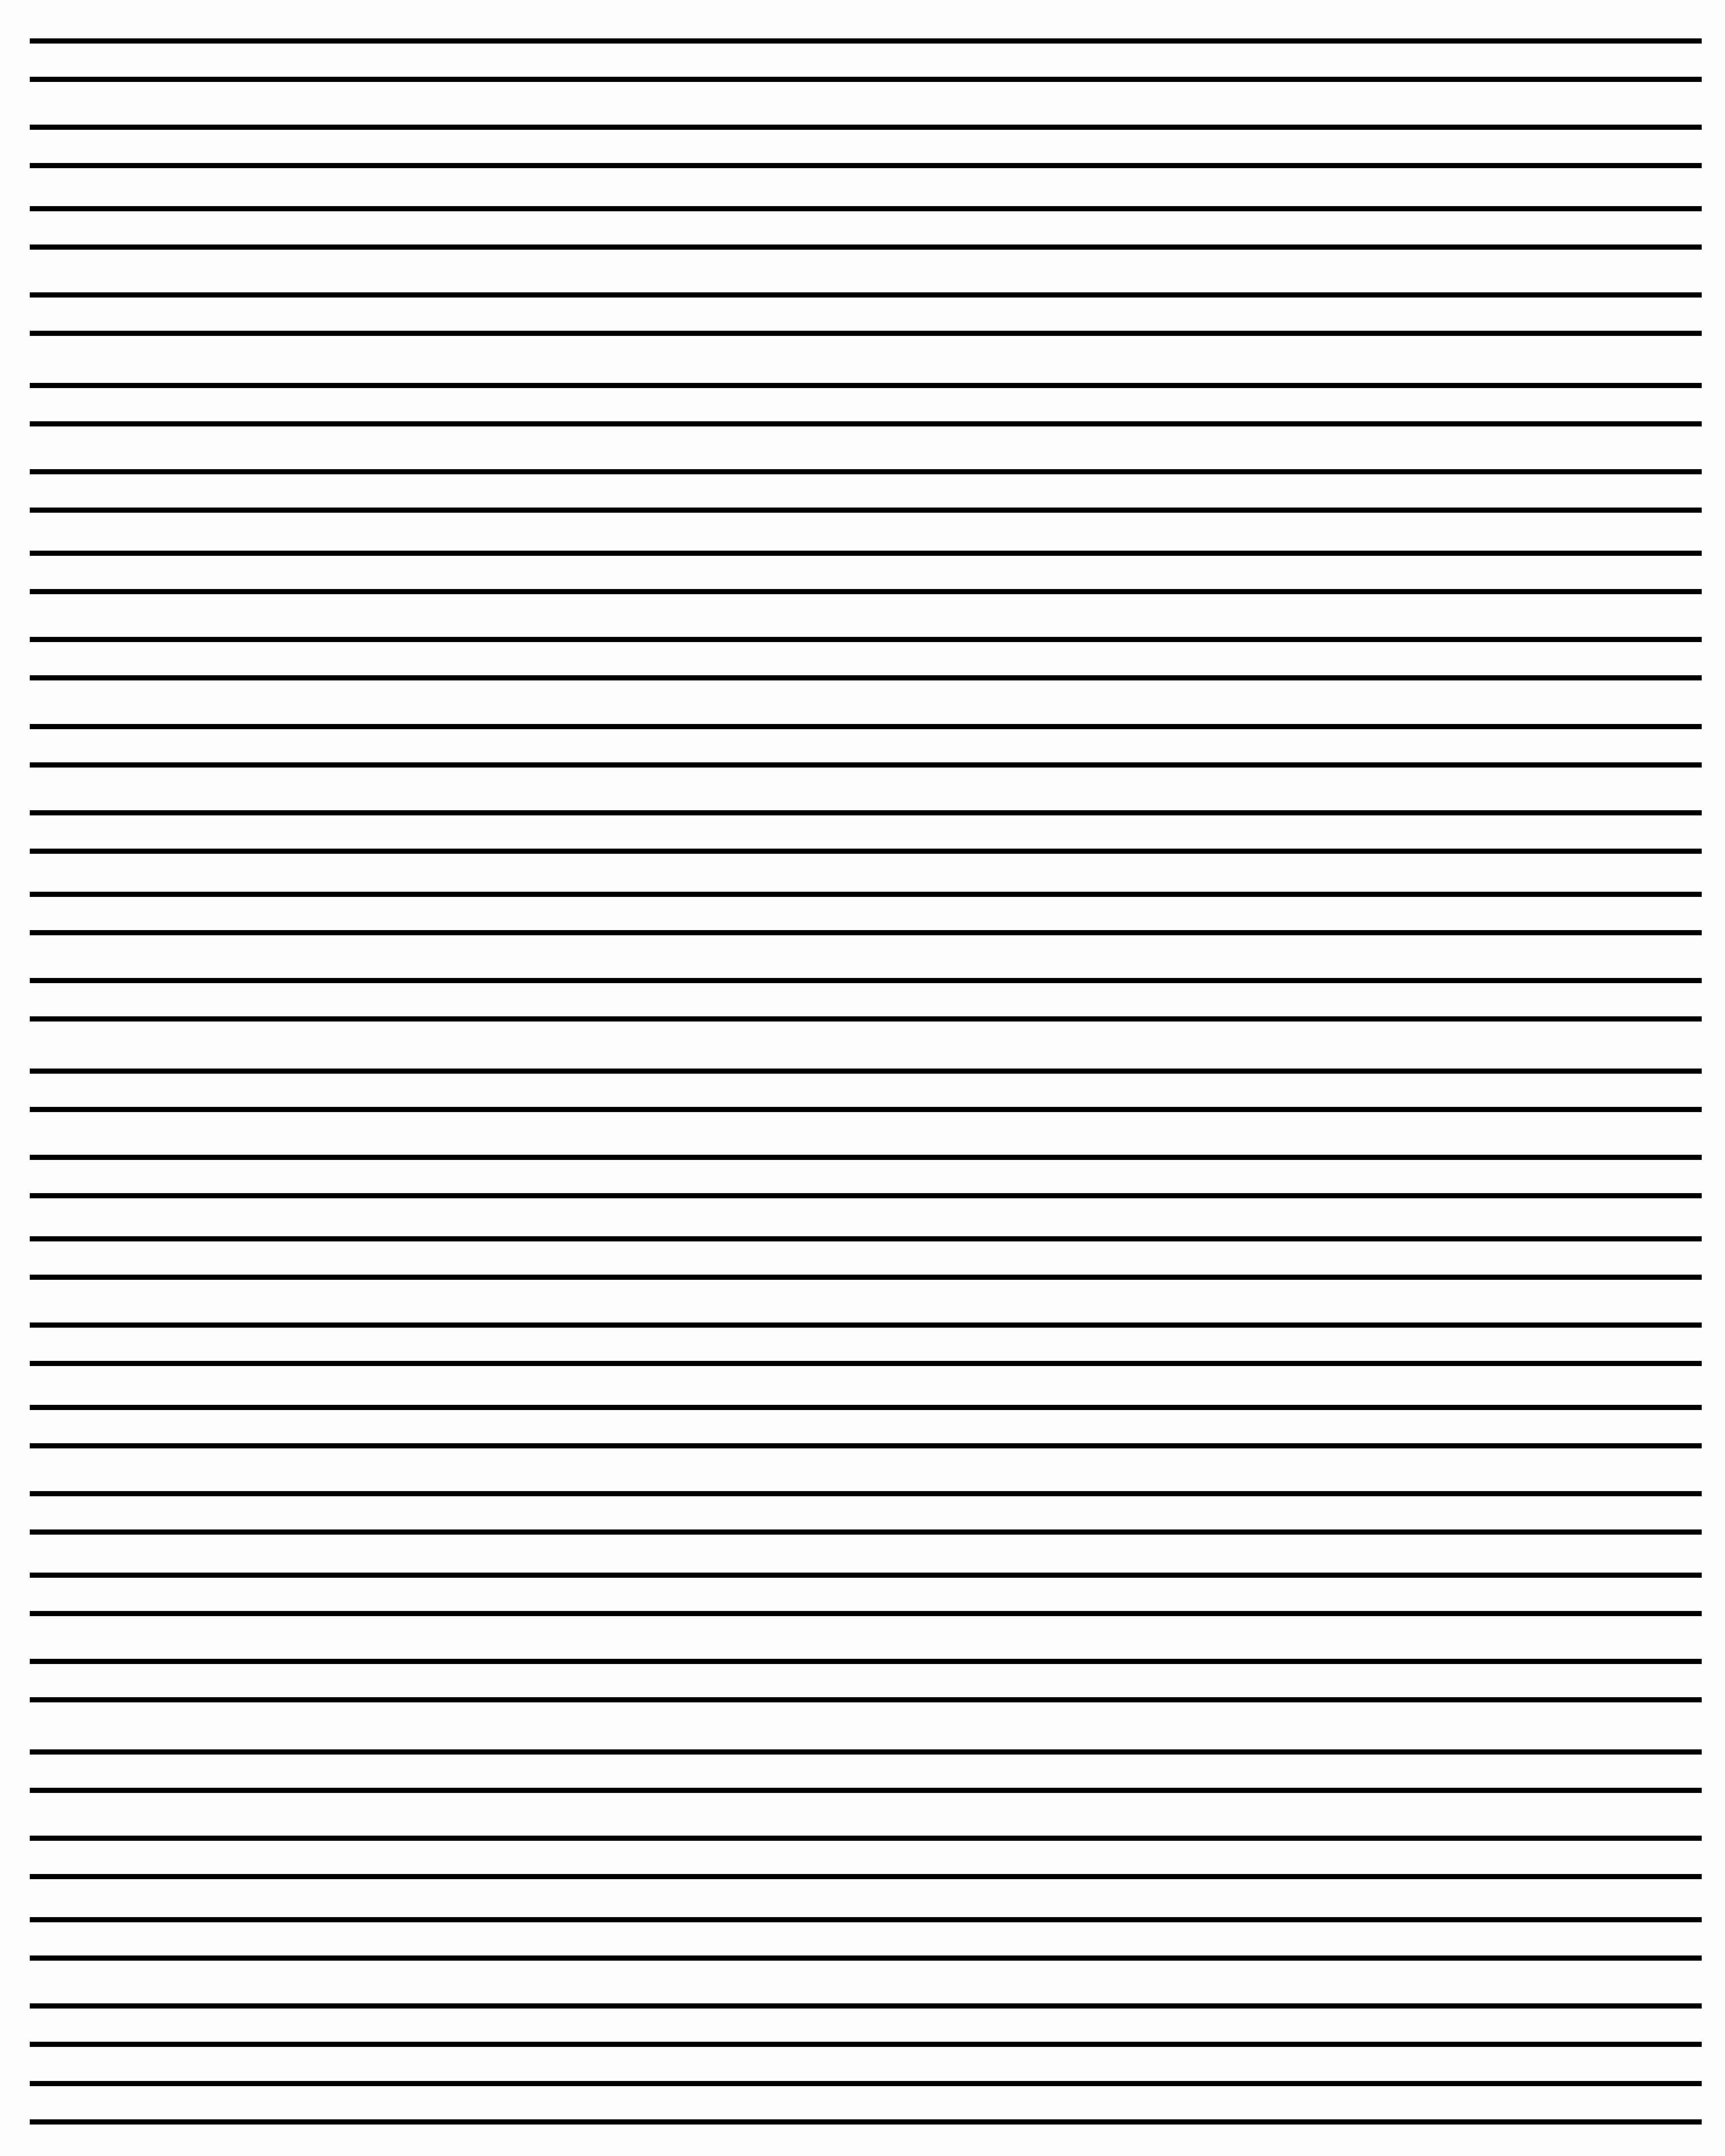 Free Printable Lined Paper Beautiful 20 Free Printable Blank Lined Paper Template In Pdf